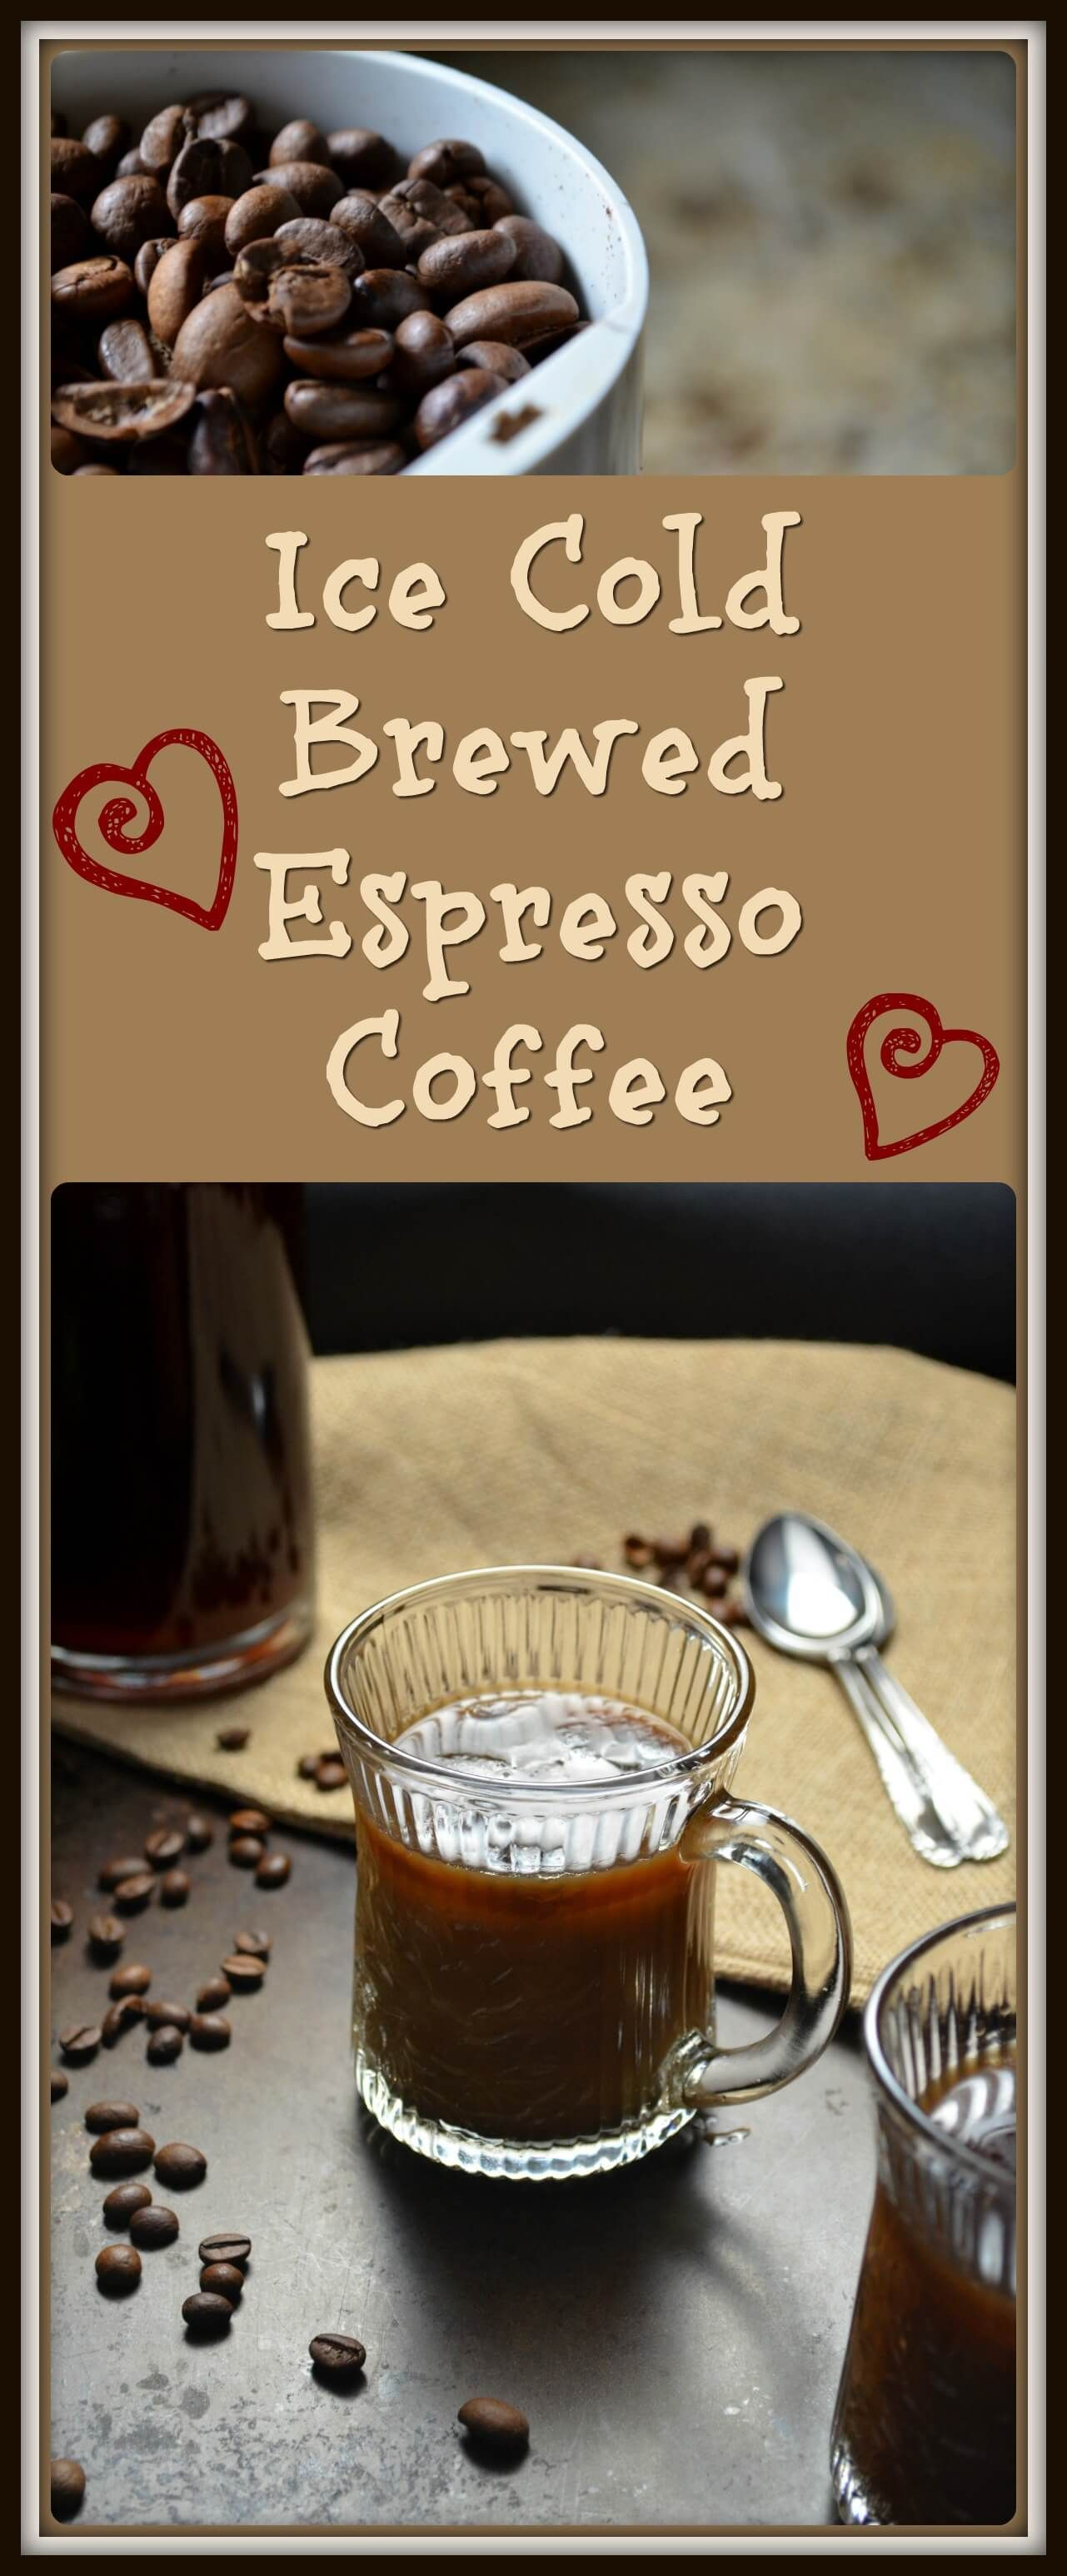 Ice Cold Brewed Espresso Coffee Recipe Coffee recipes